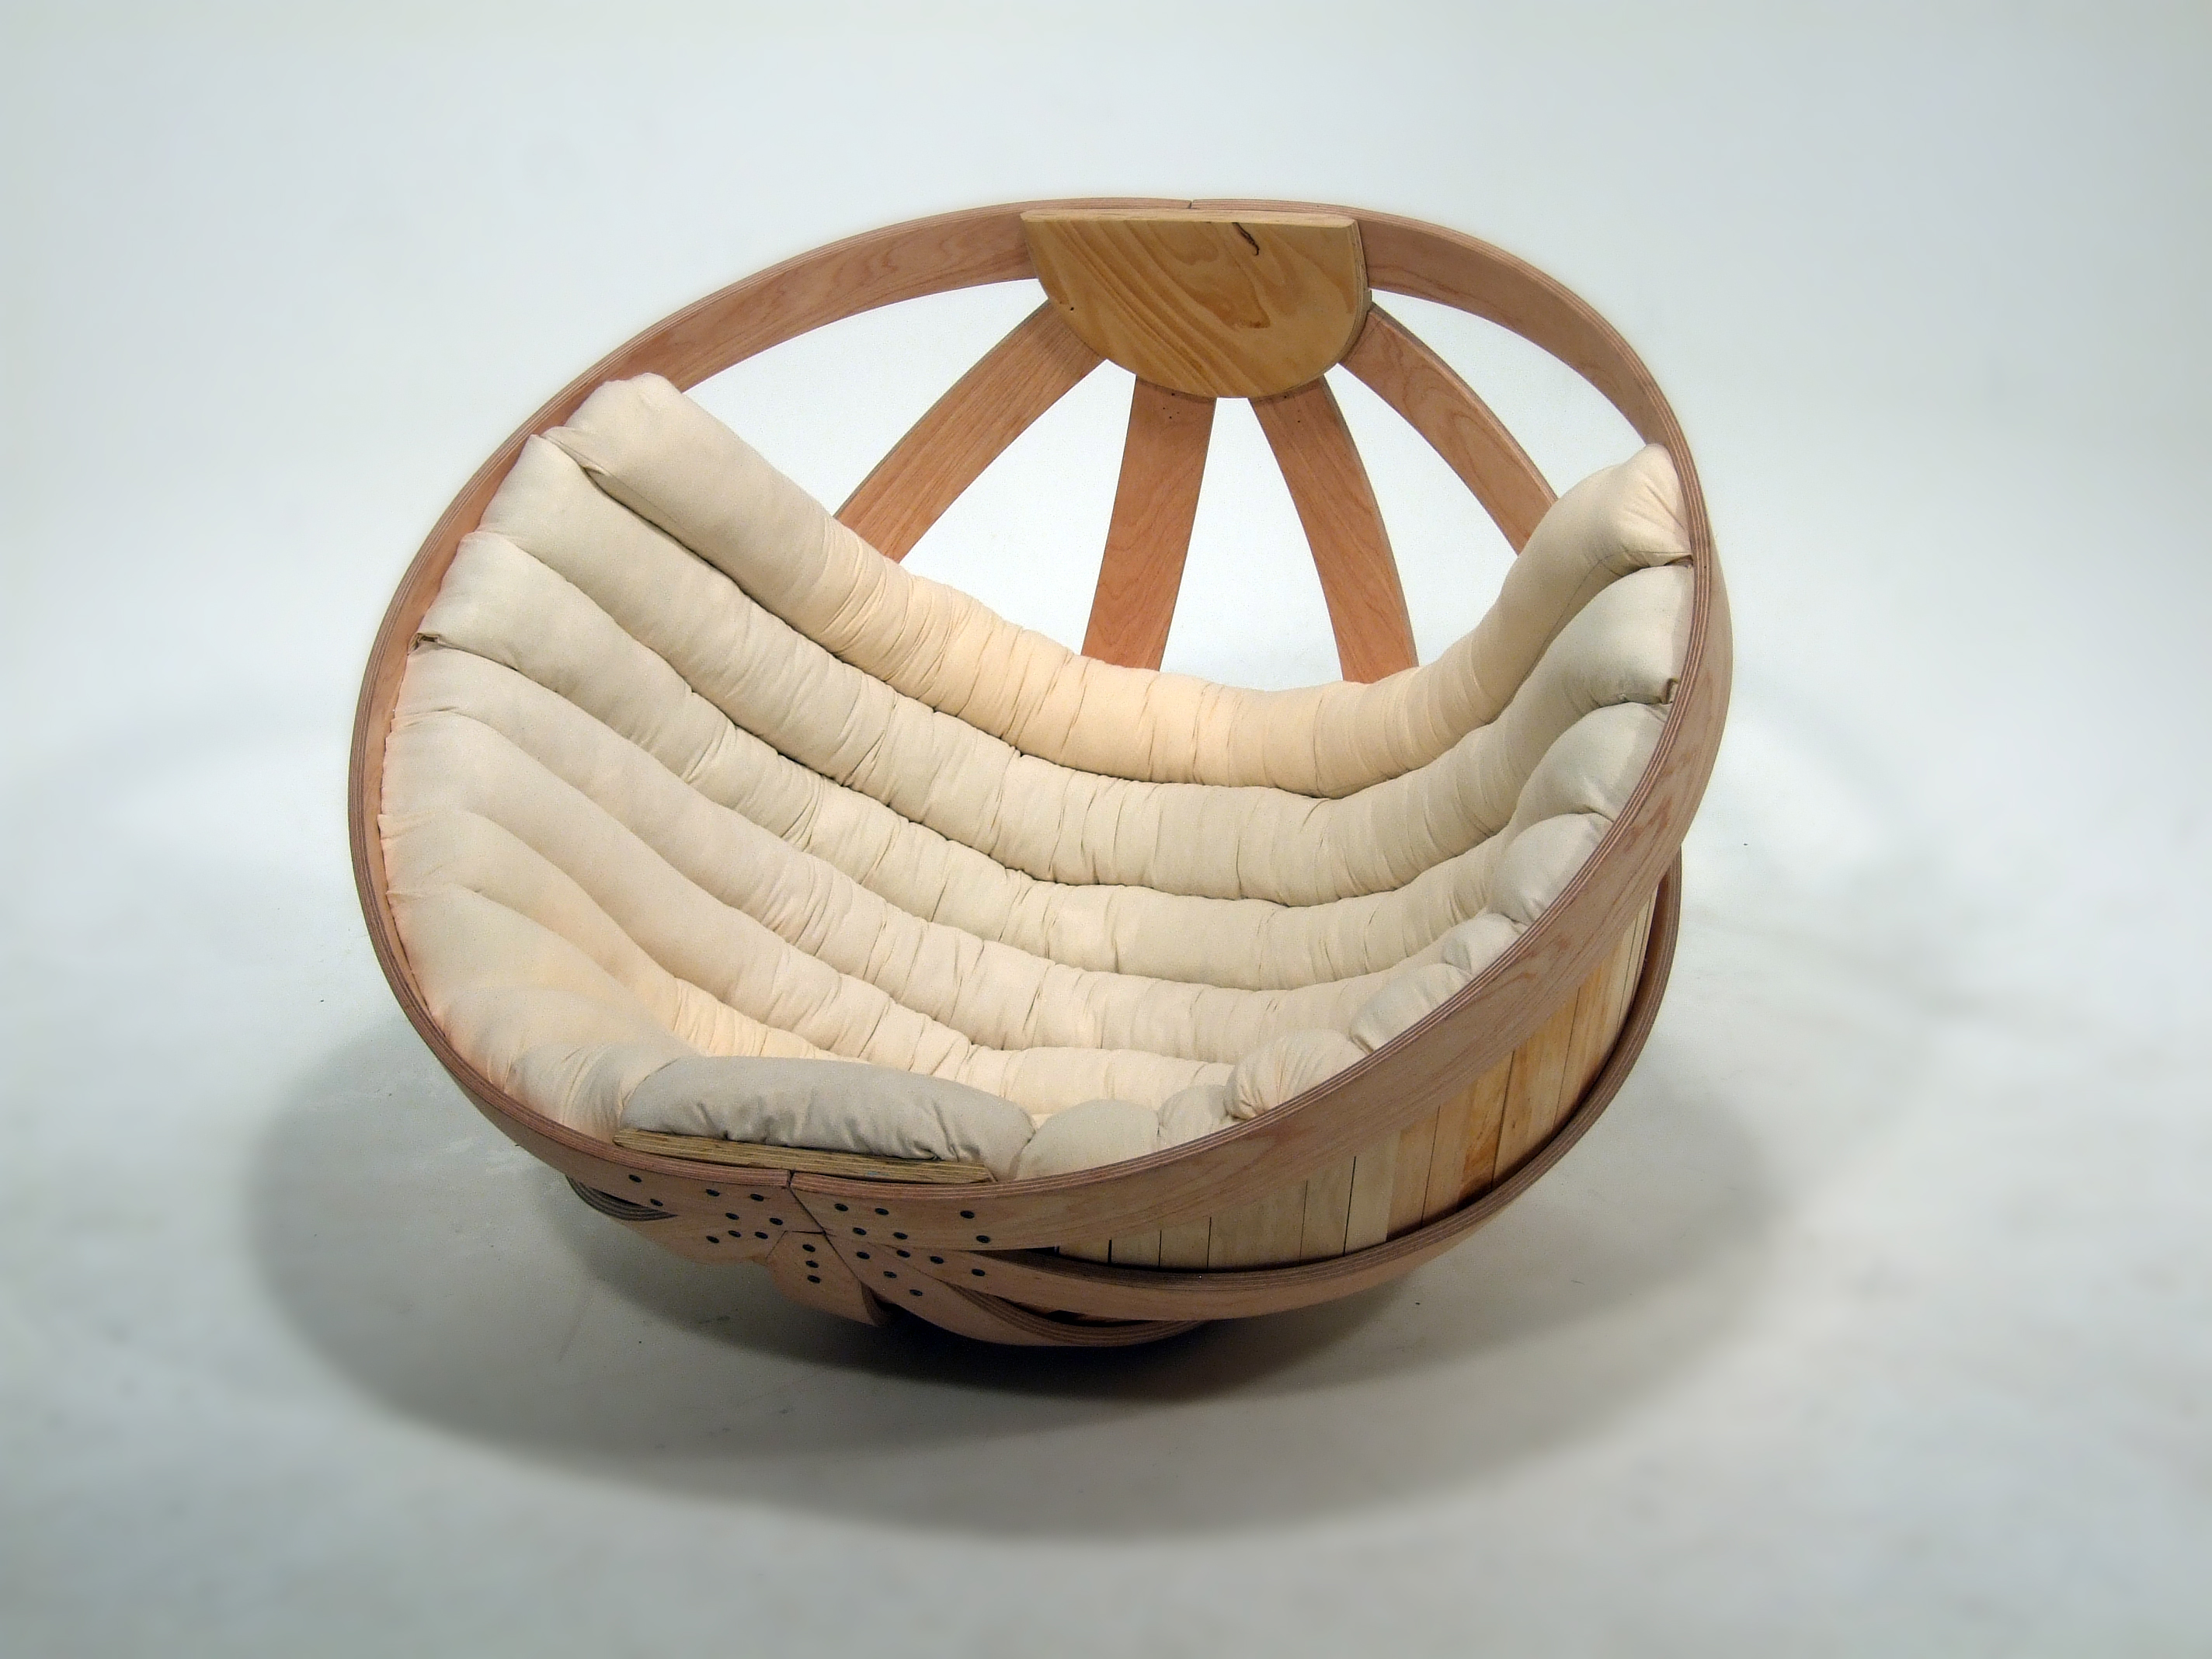 Round Comfy Chair Cradle By Richard Clarkson At Coroflot